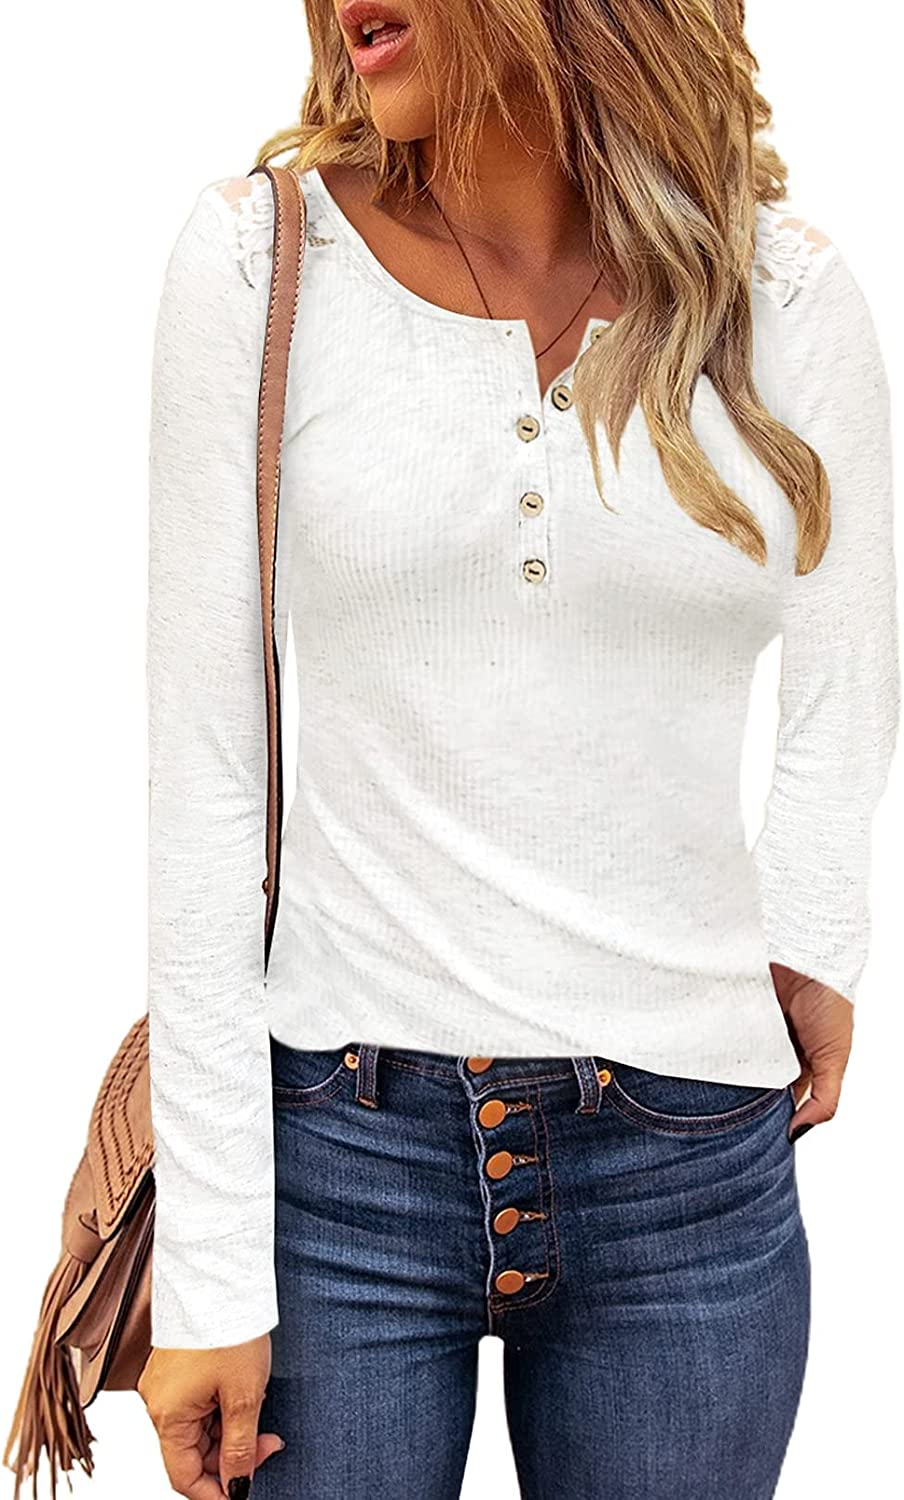 ROSKIKI Womens Crochet Hollow-Out Sleeve Button Down Ribbed Knitted Pullover Tops